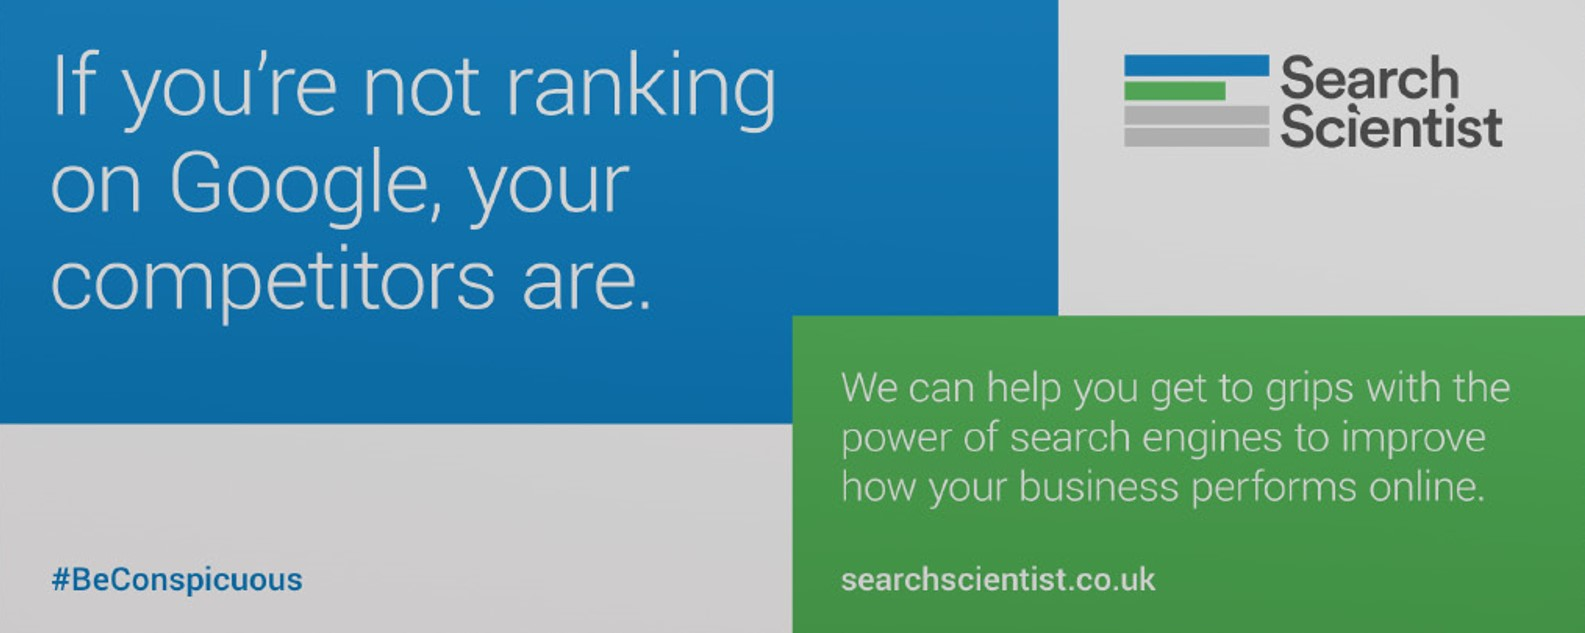 if you're not ranking on google competitors are seo billboard